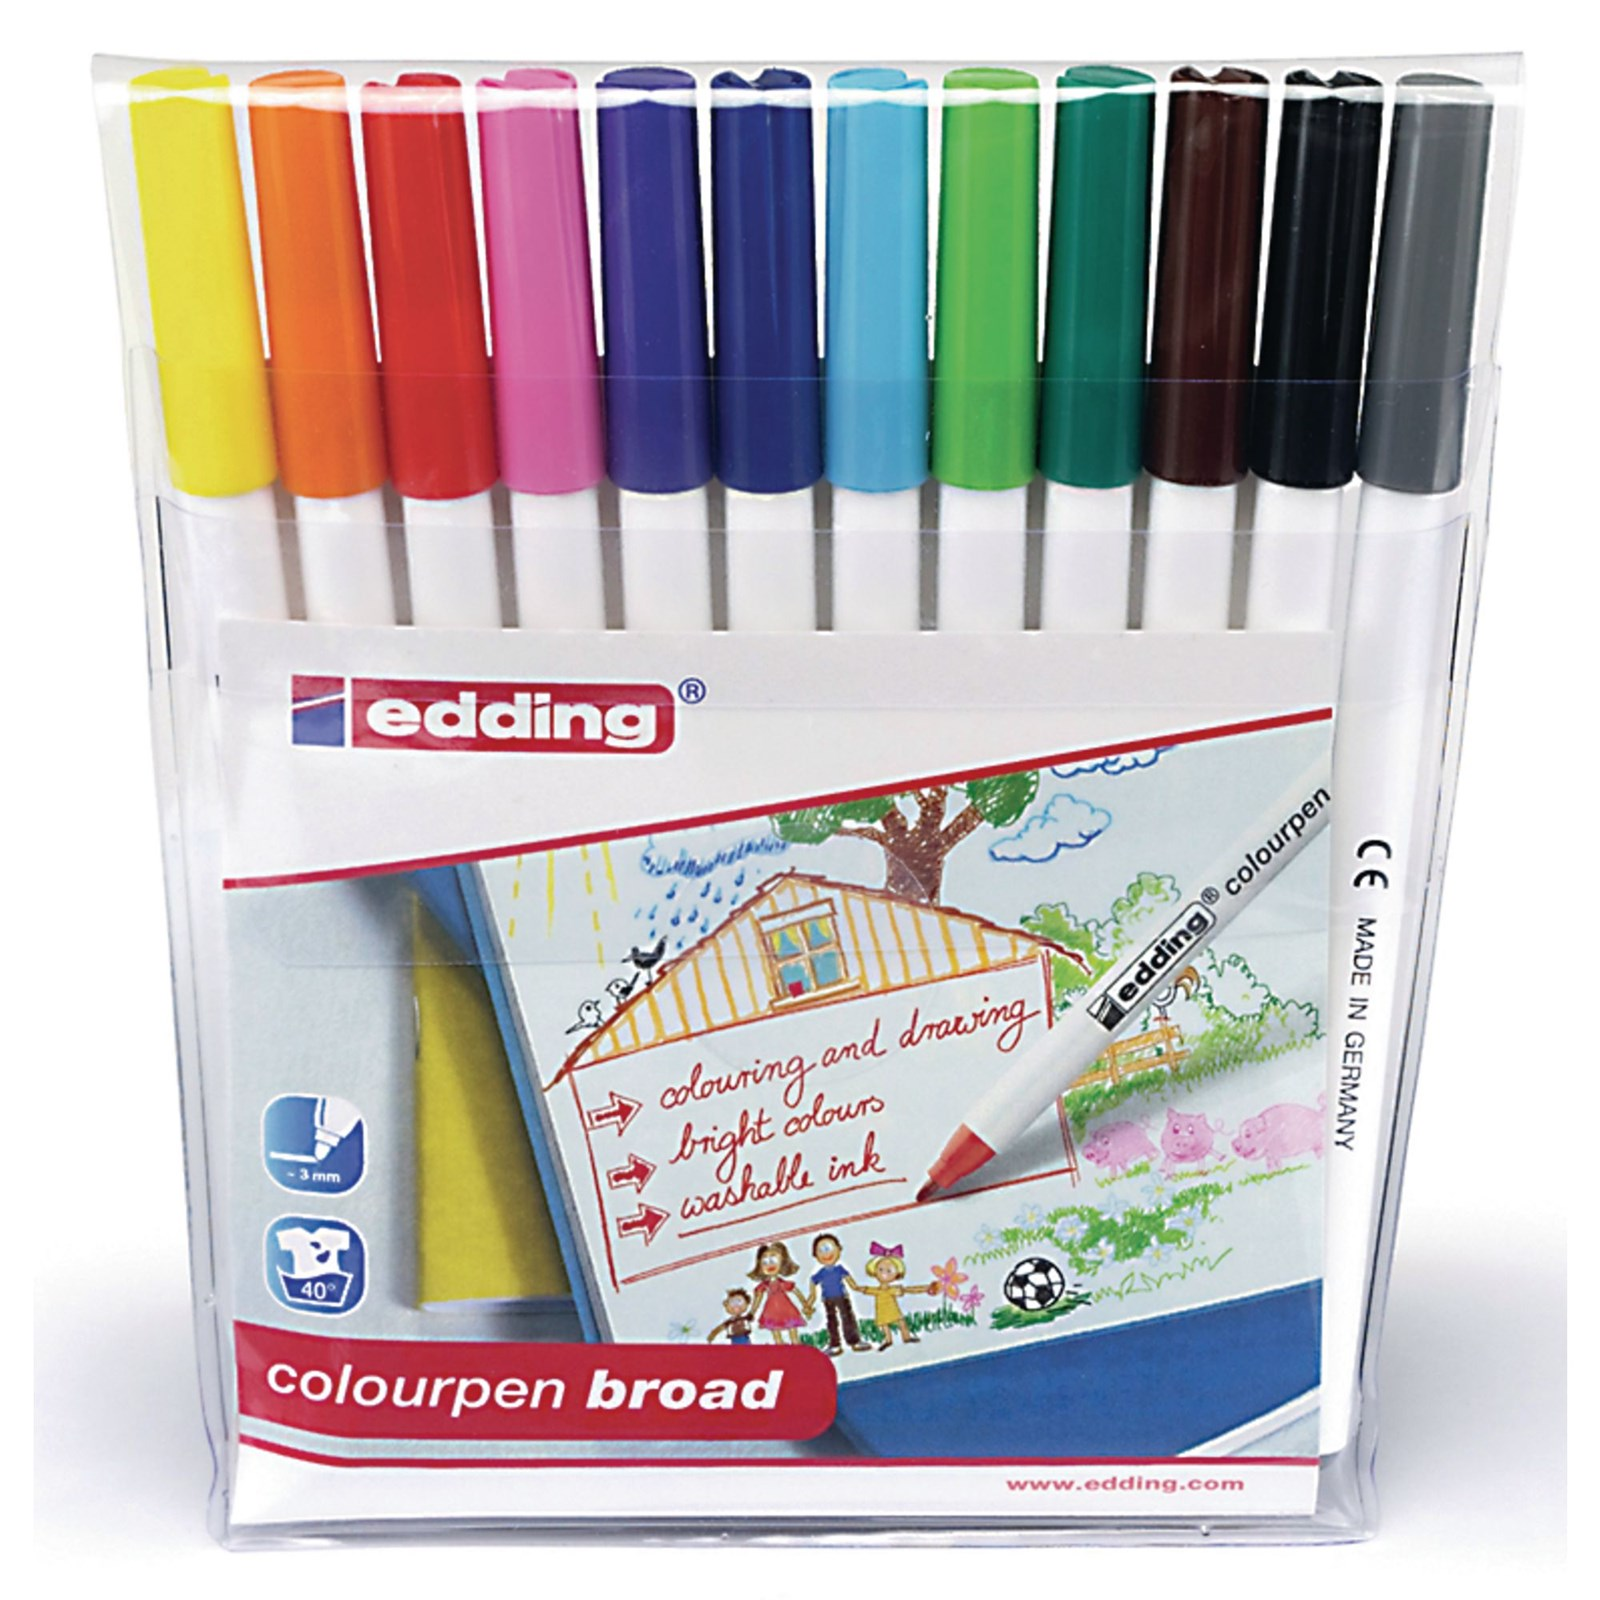 Edding Colourpen Broad - Assorted - Pack of 12